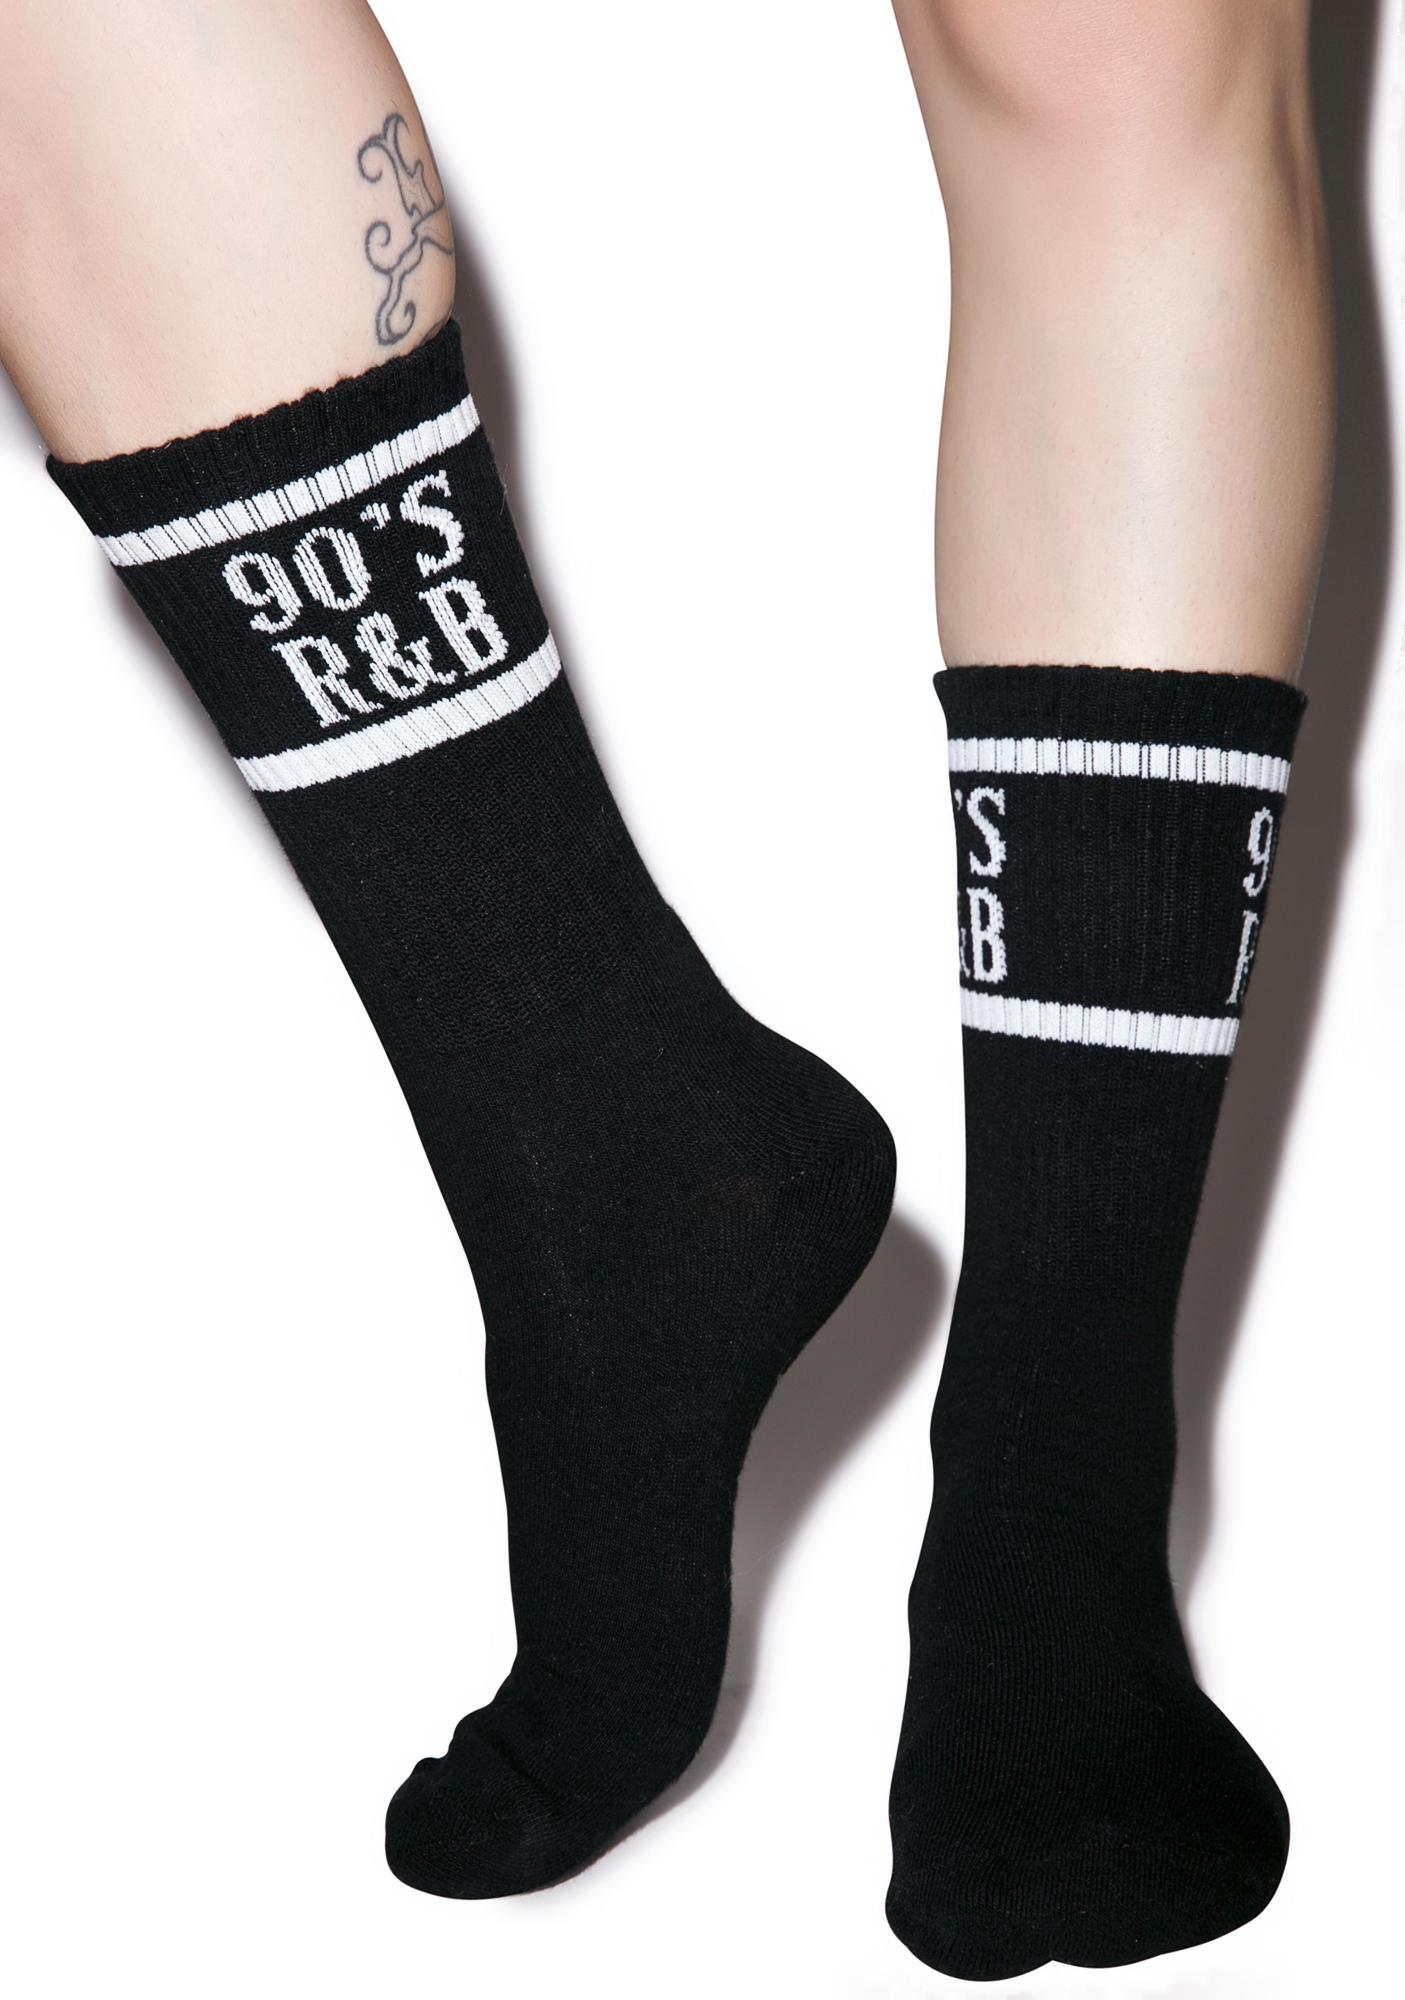 Dimepiece 90s R&B Socks